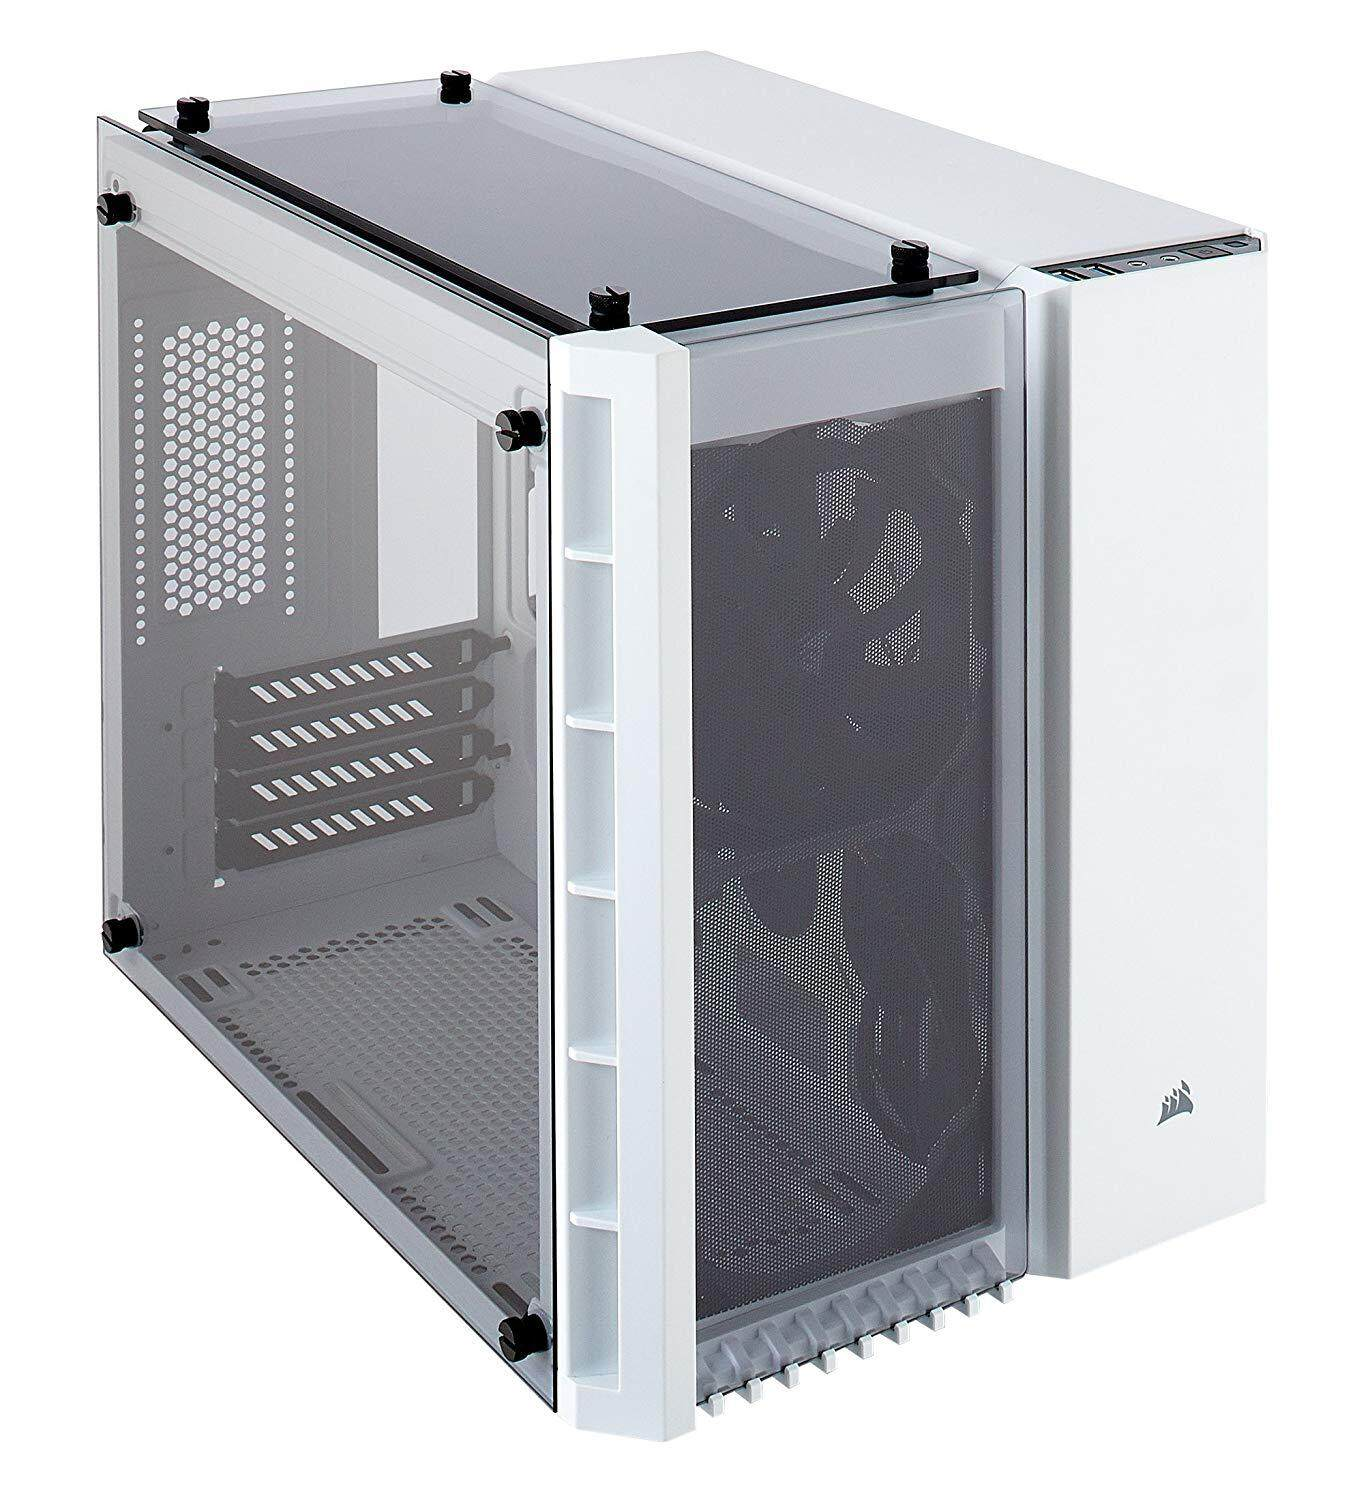 # CORSAIR Crystal Series 280X Tempered Glass Micro ATX PC Case # Black | White Malaysia